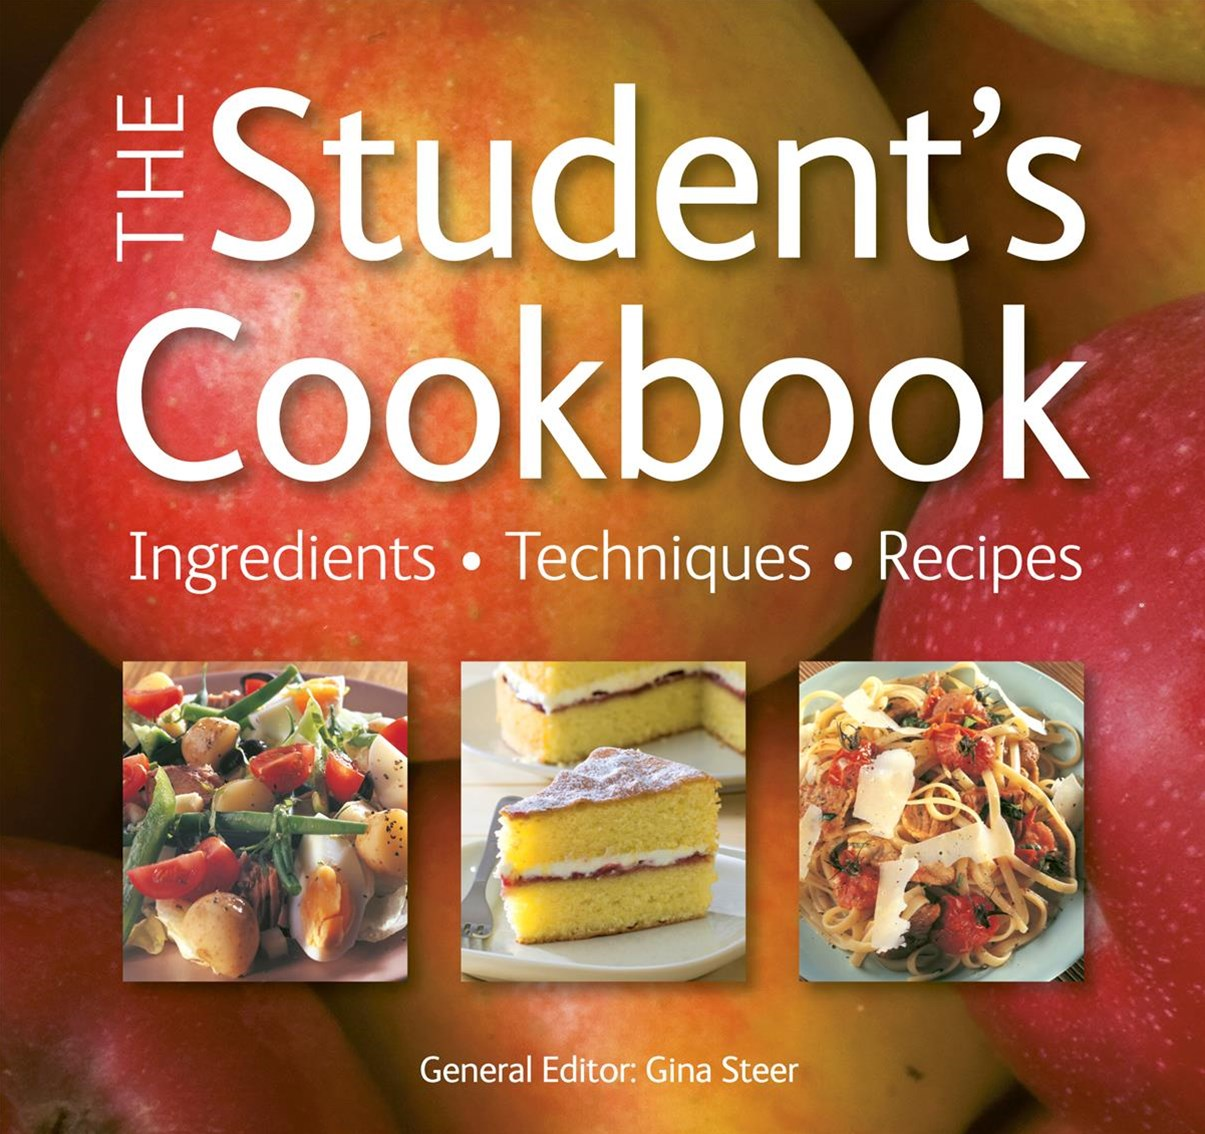 Student's Cookbook